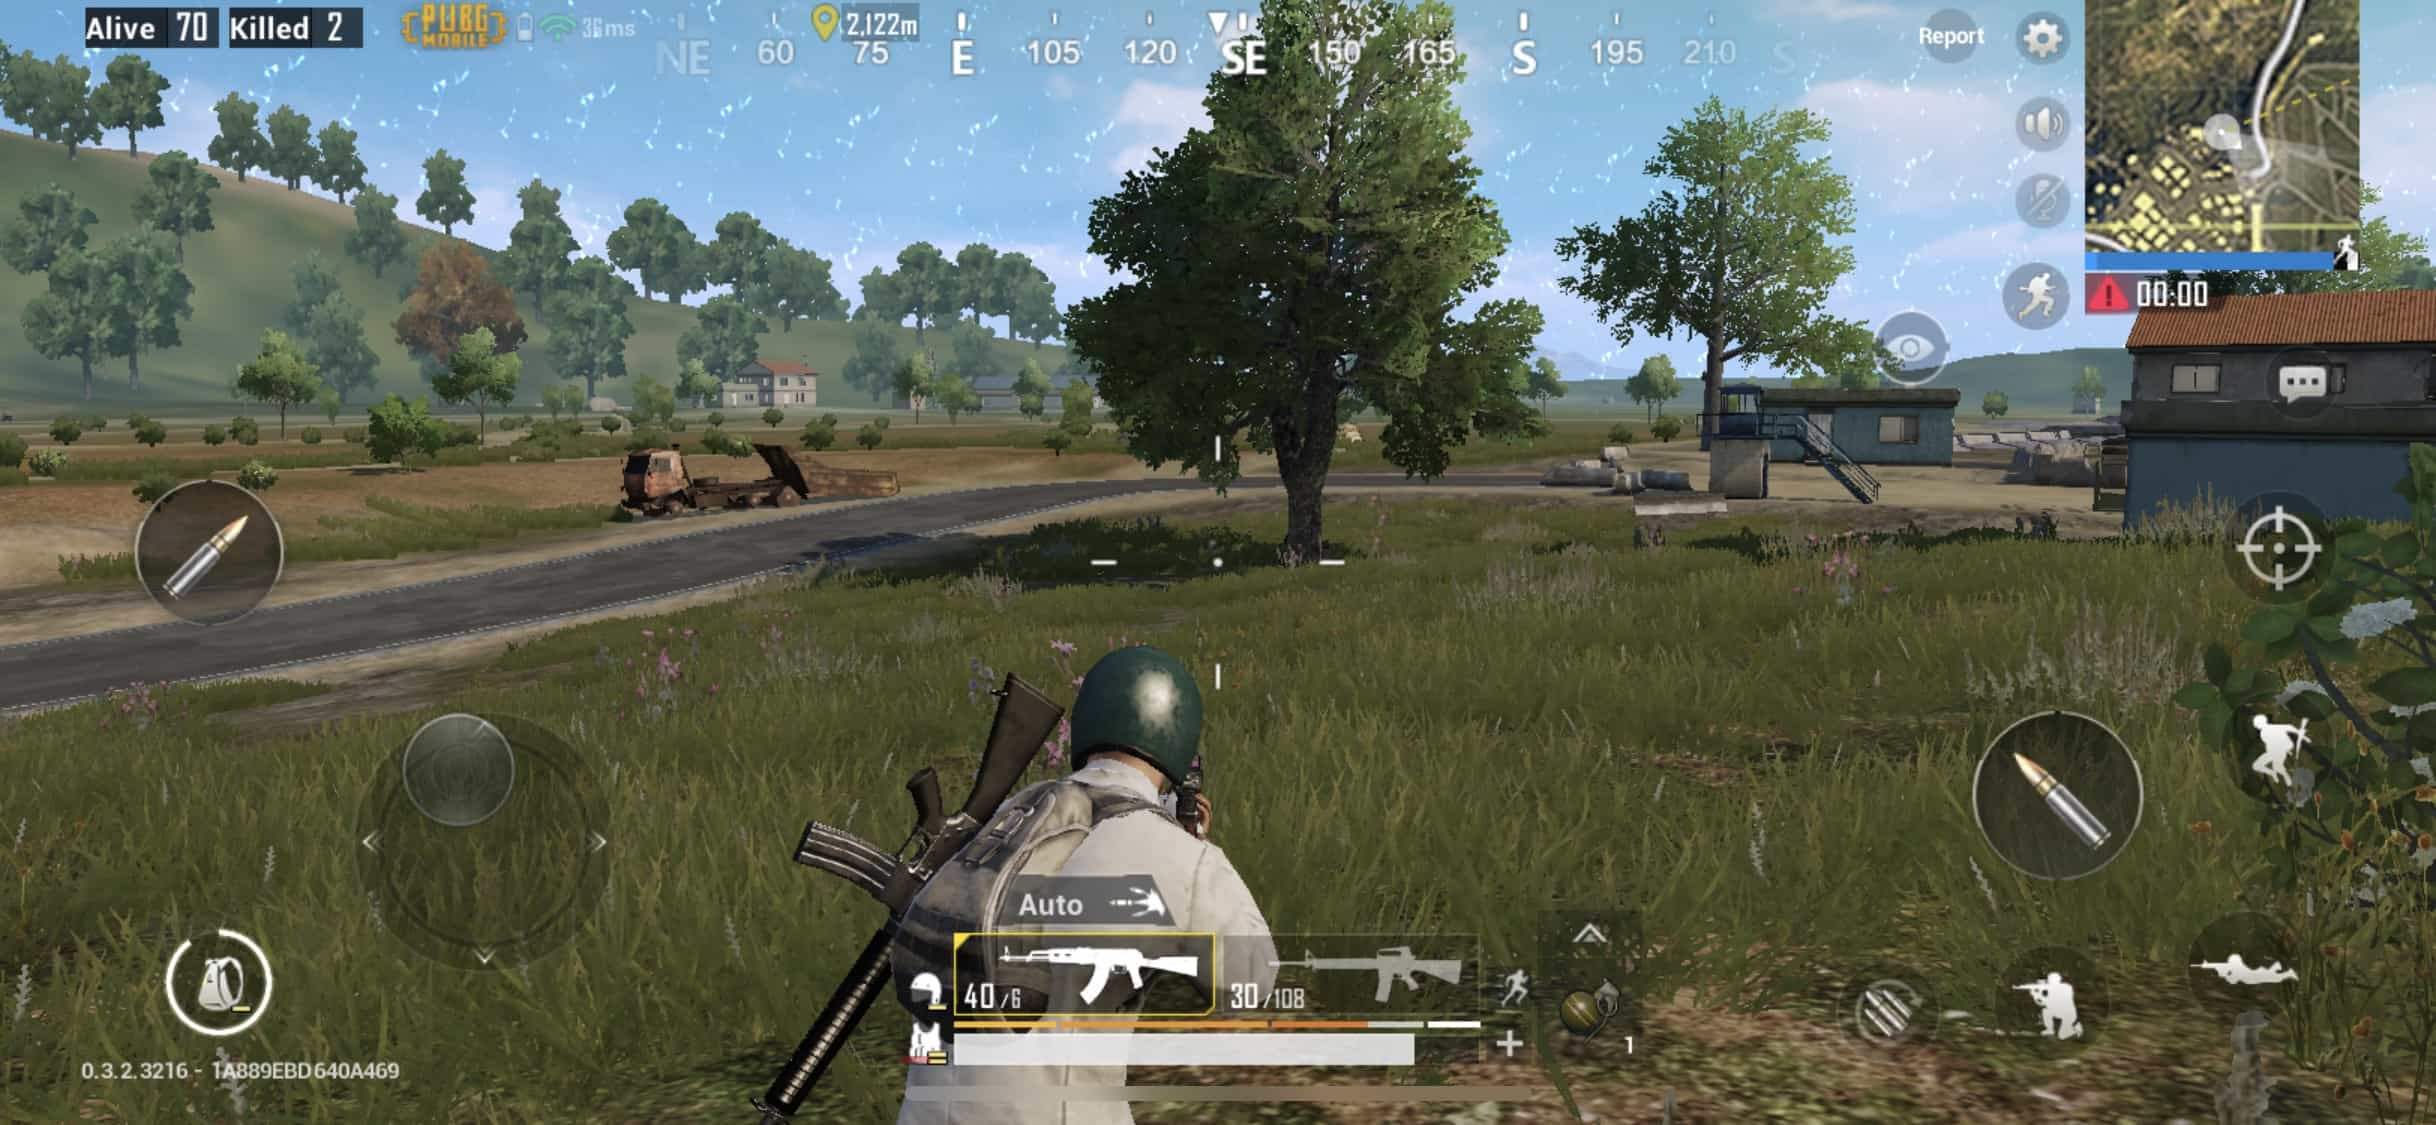 Youre Winning Pubg Mobile Because Playing Against Bots Mobil